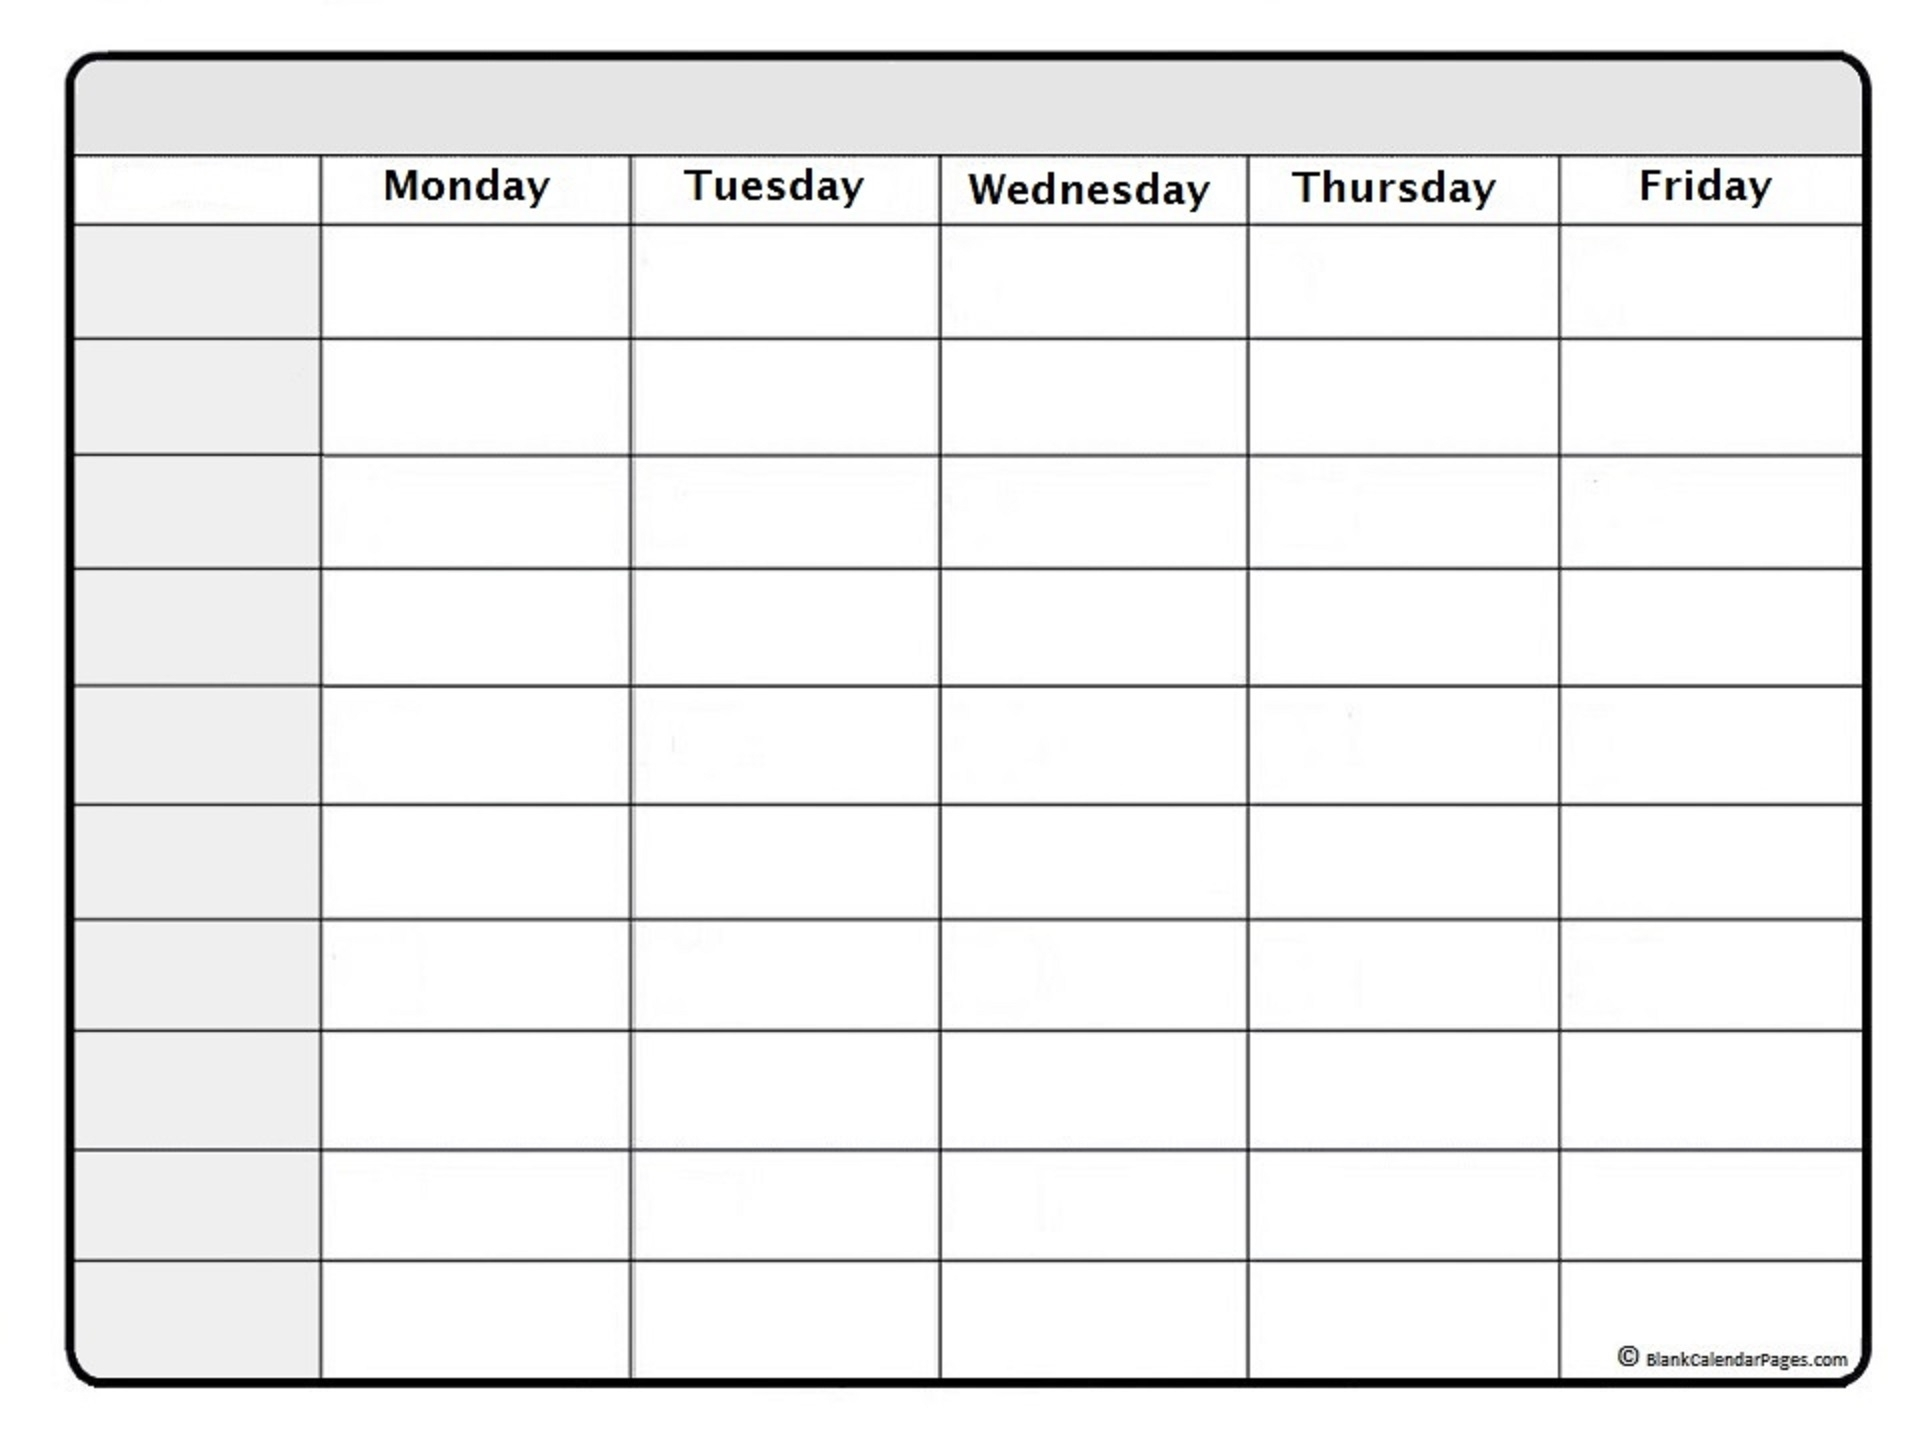 May 2020 Weekly Calendar | May 2020 Weekly Calendar Template